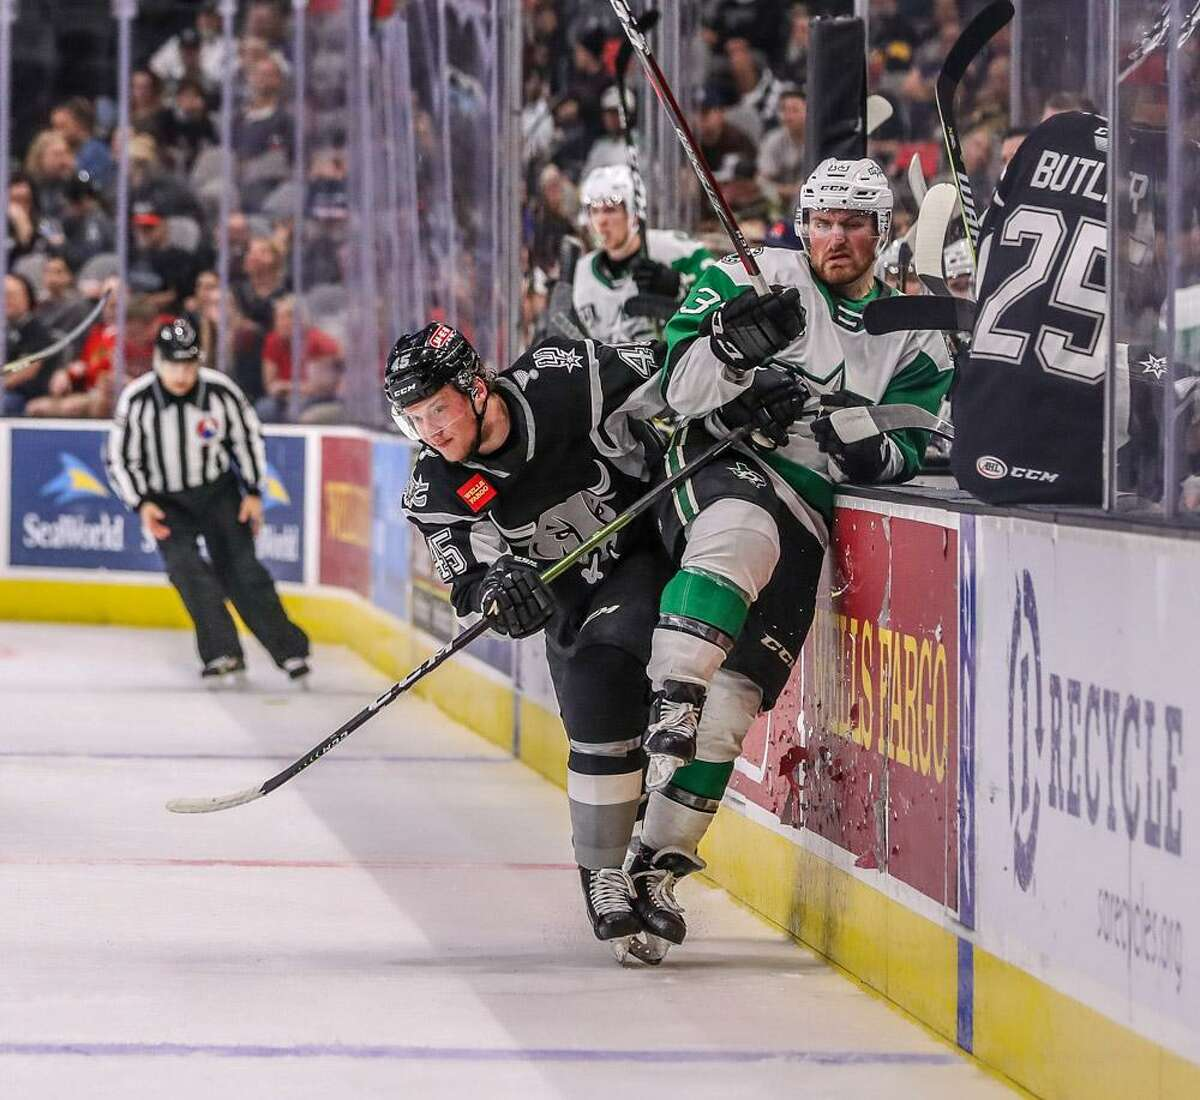 The Texas Stars play the San Antonio Rampage during an AHL hockey game, Saturday, March 9, 2019, at the AT&T Center in San Antonio, Texas. (Josh Jordan/AHL)